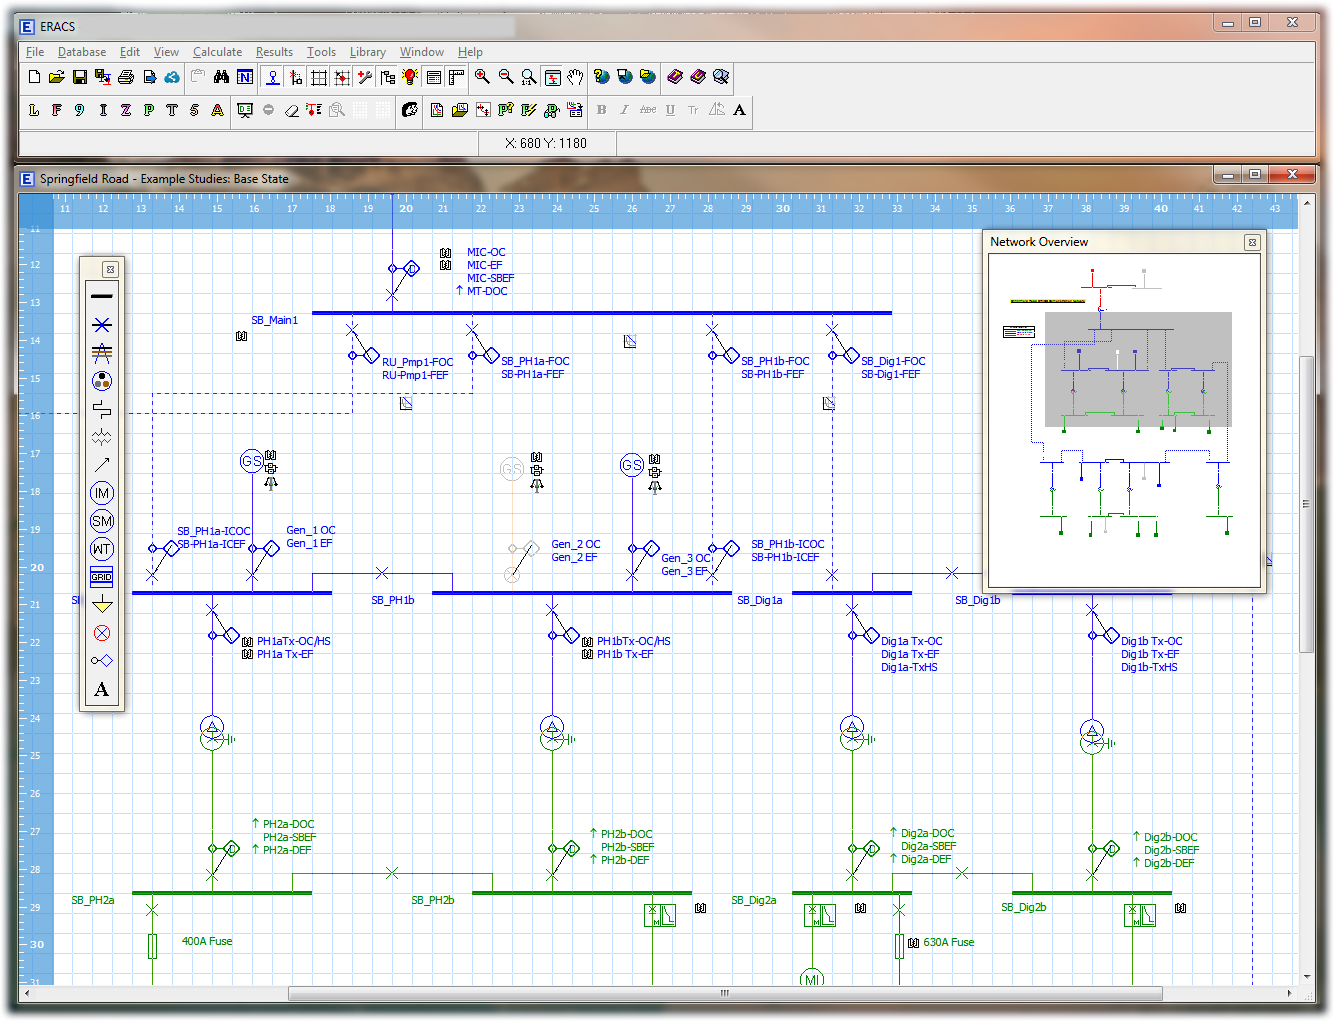 ERACS | ERACS - Power Systems Analysis Software | RINA